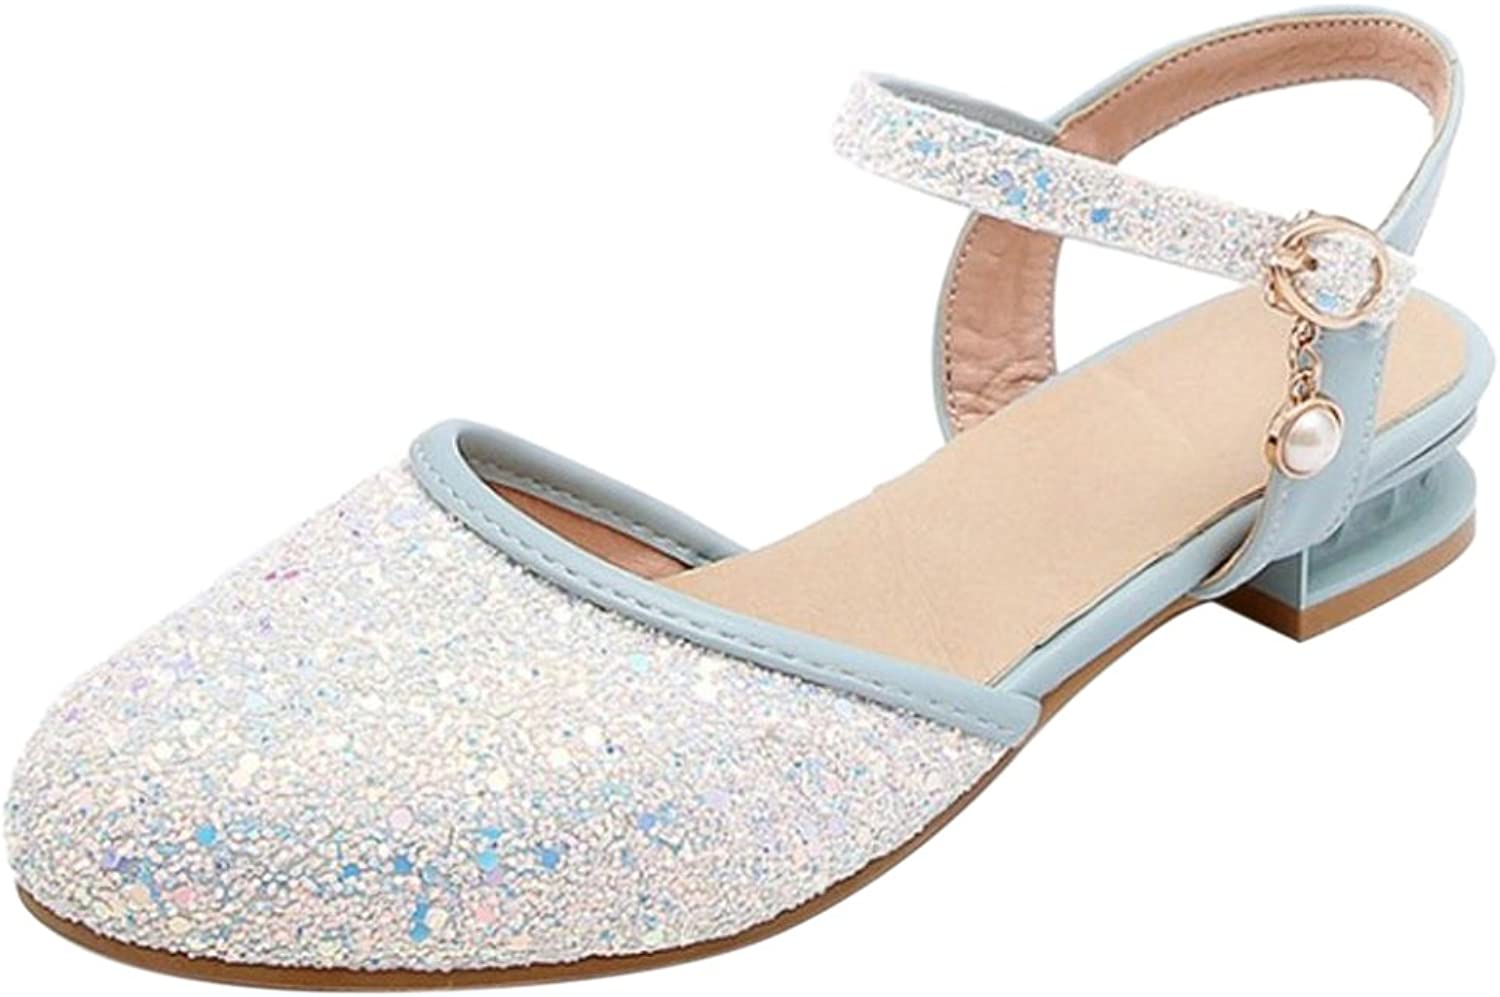 KemeKiss Women Buckle Strap Sandals shoes Flats Glitter